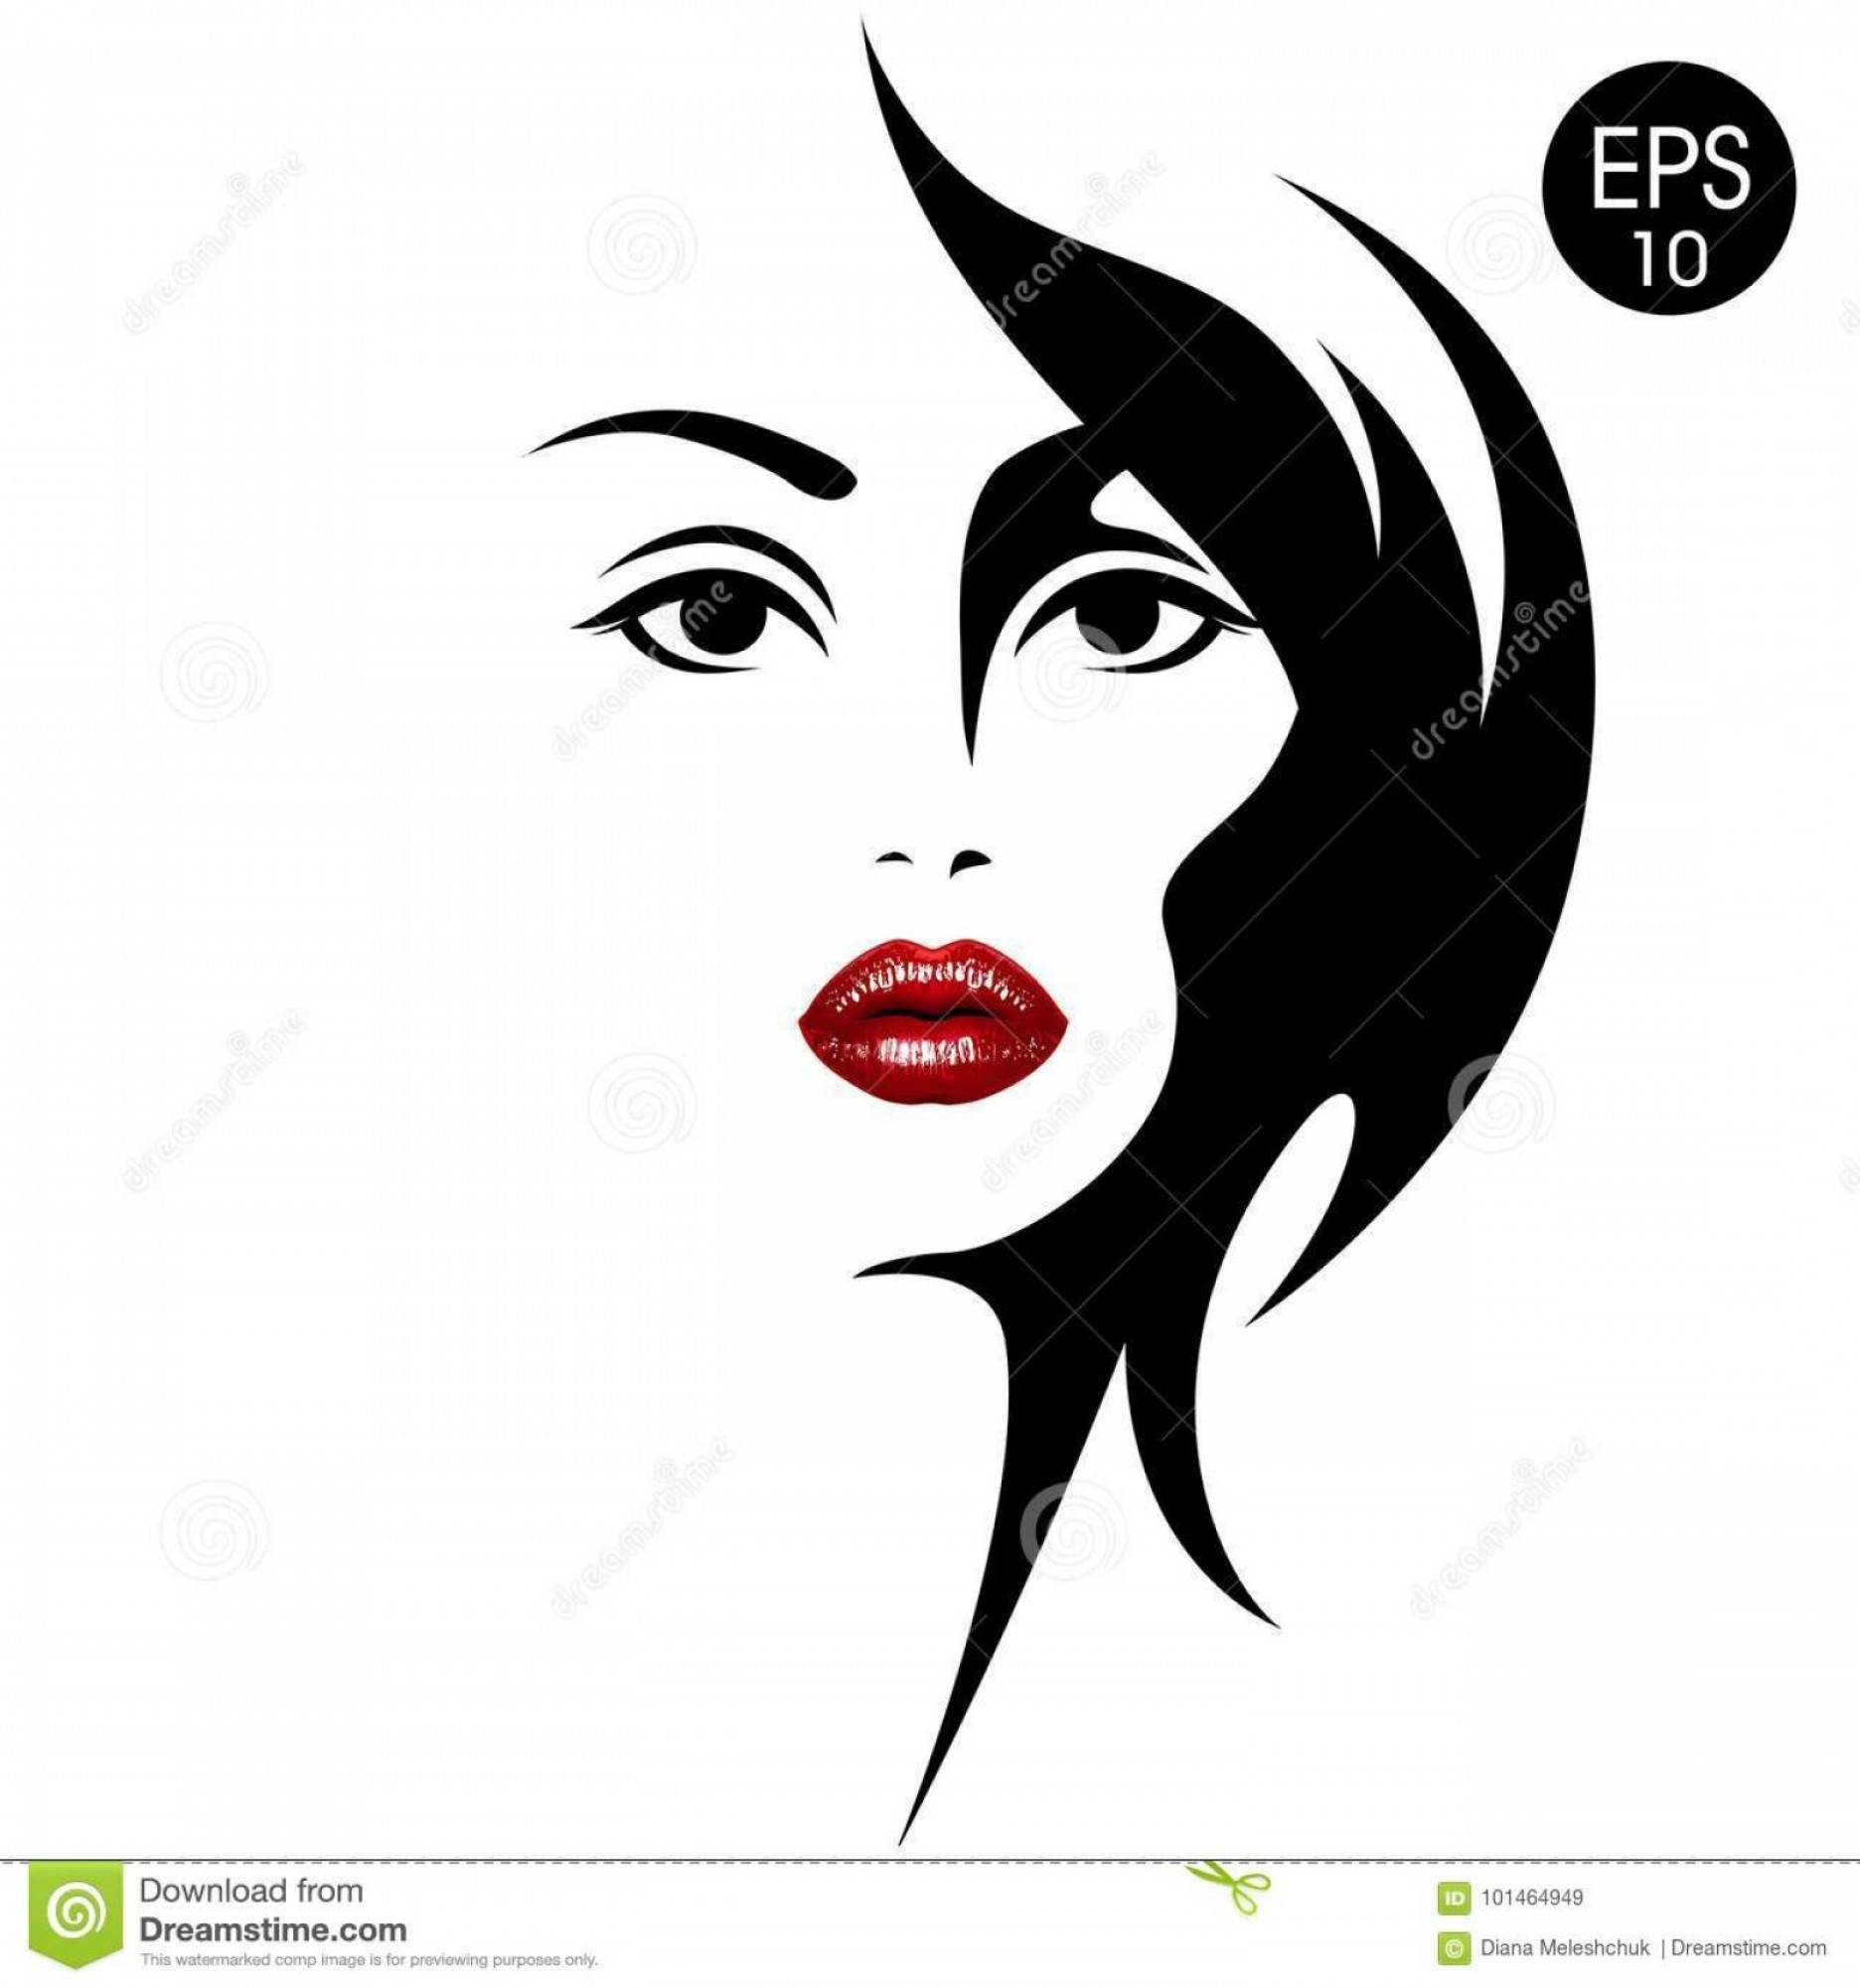 Girl Face Vector Art Black And White: Woman S Face Red Lips Vector Fashion Illustration Black White Silhouette Your Design Image